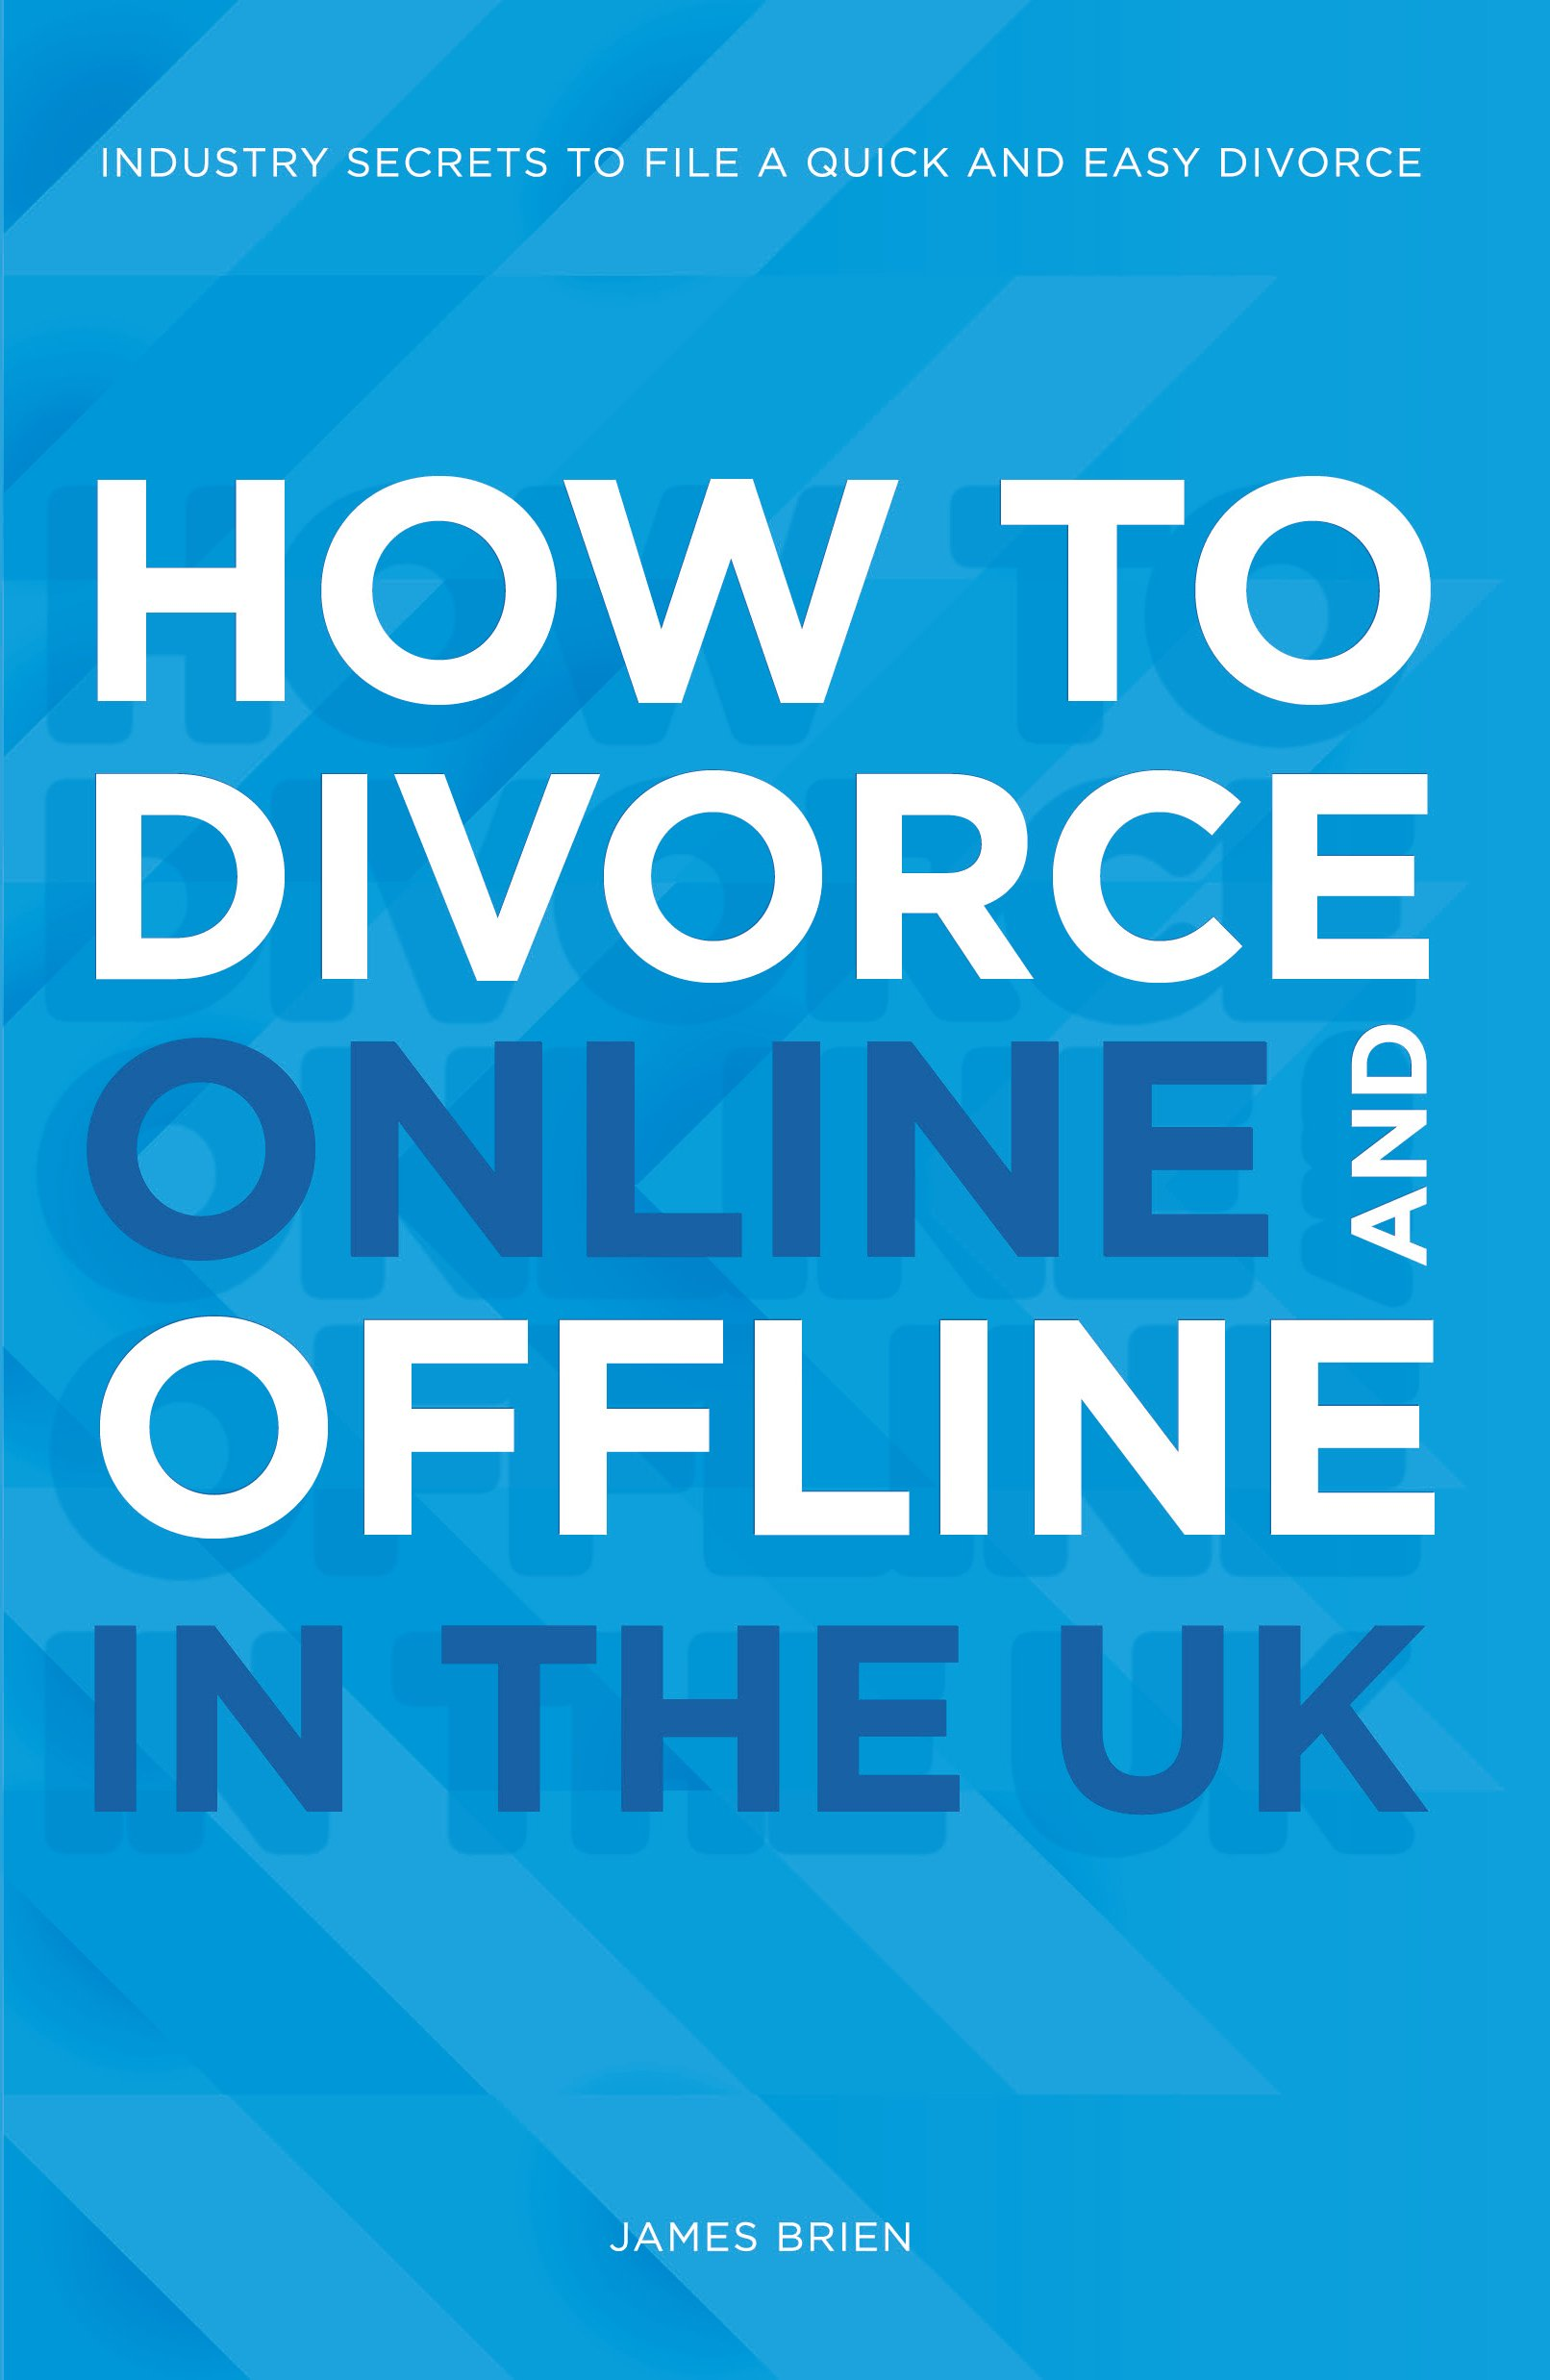 How to divorce online and offline in the UK